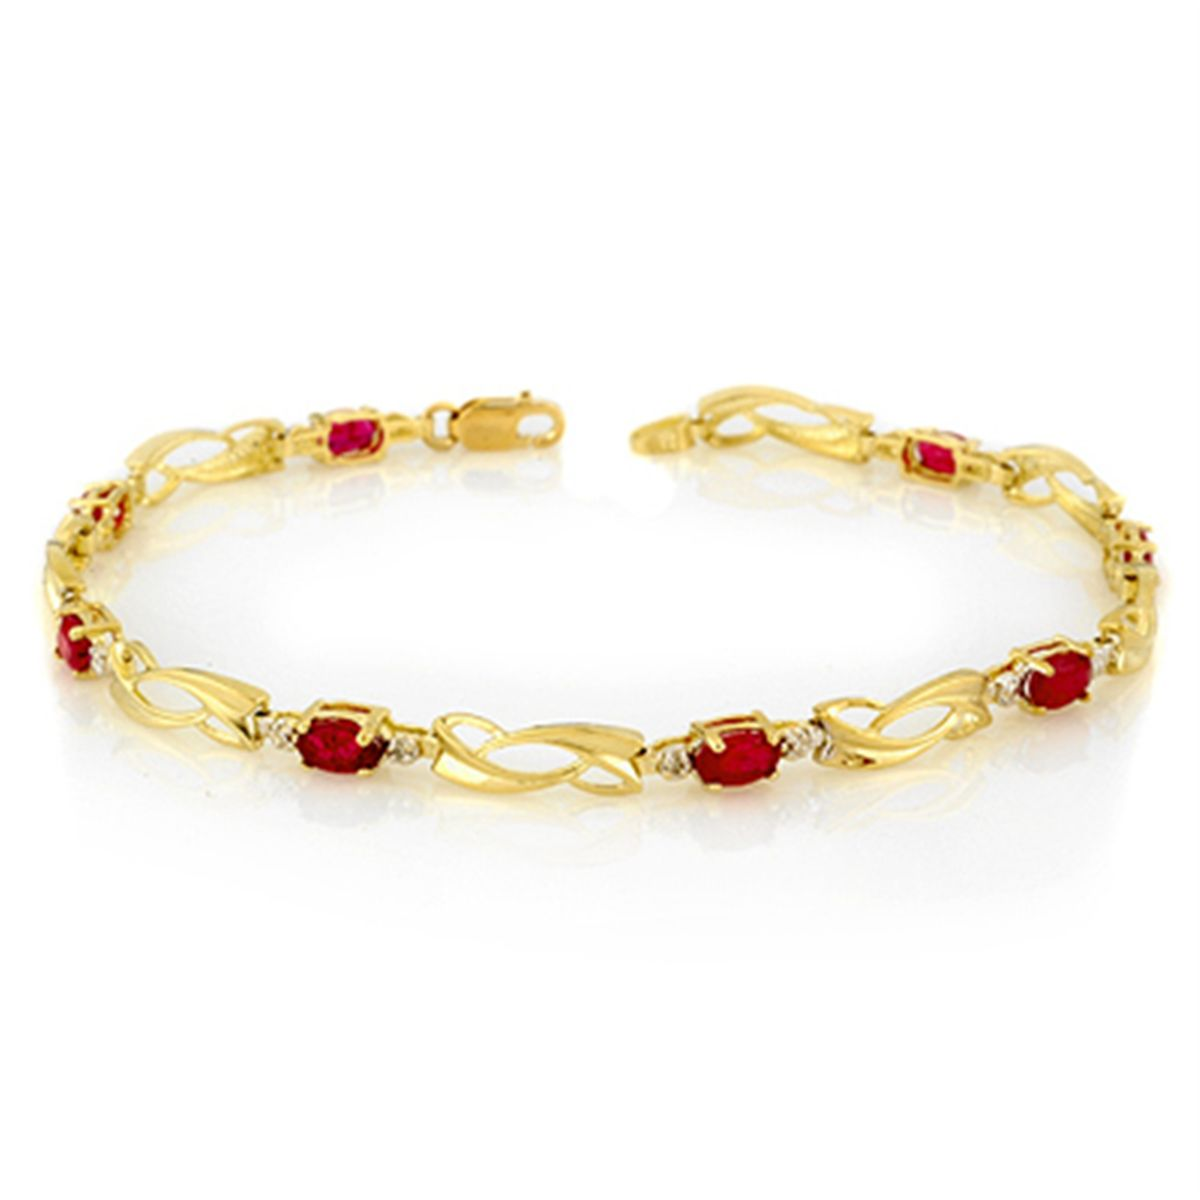 Bracelets gold with ruby recommend dress in summer in 2019